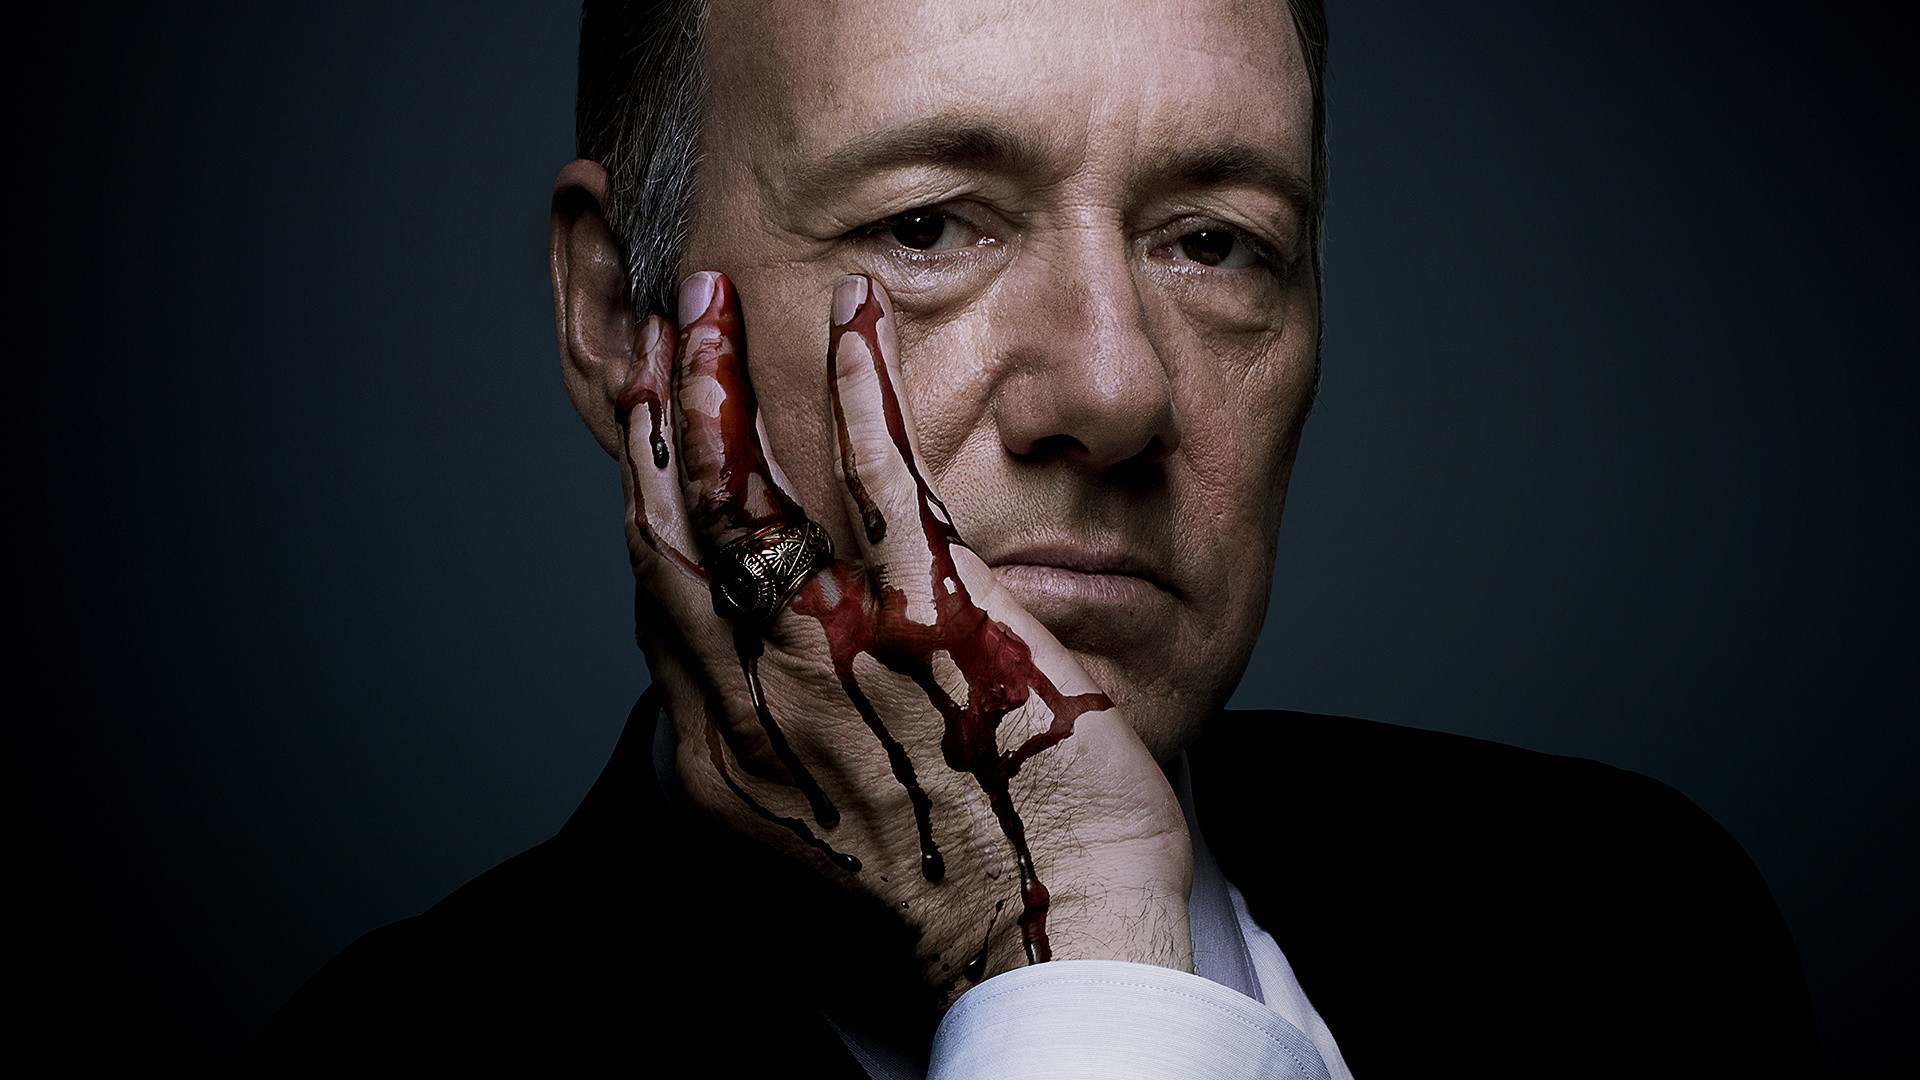 Fondos de pantalla de 'House of Cards'